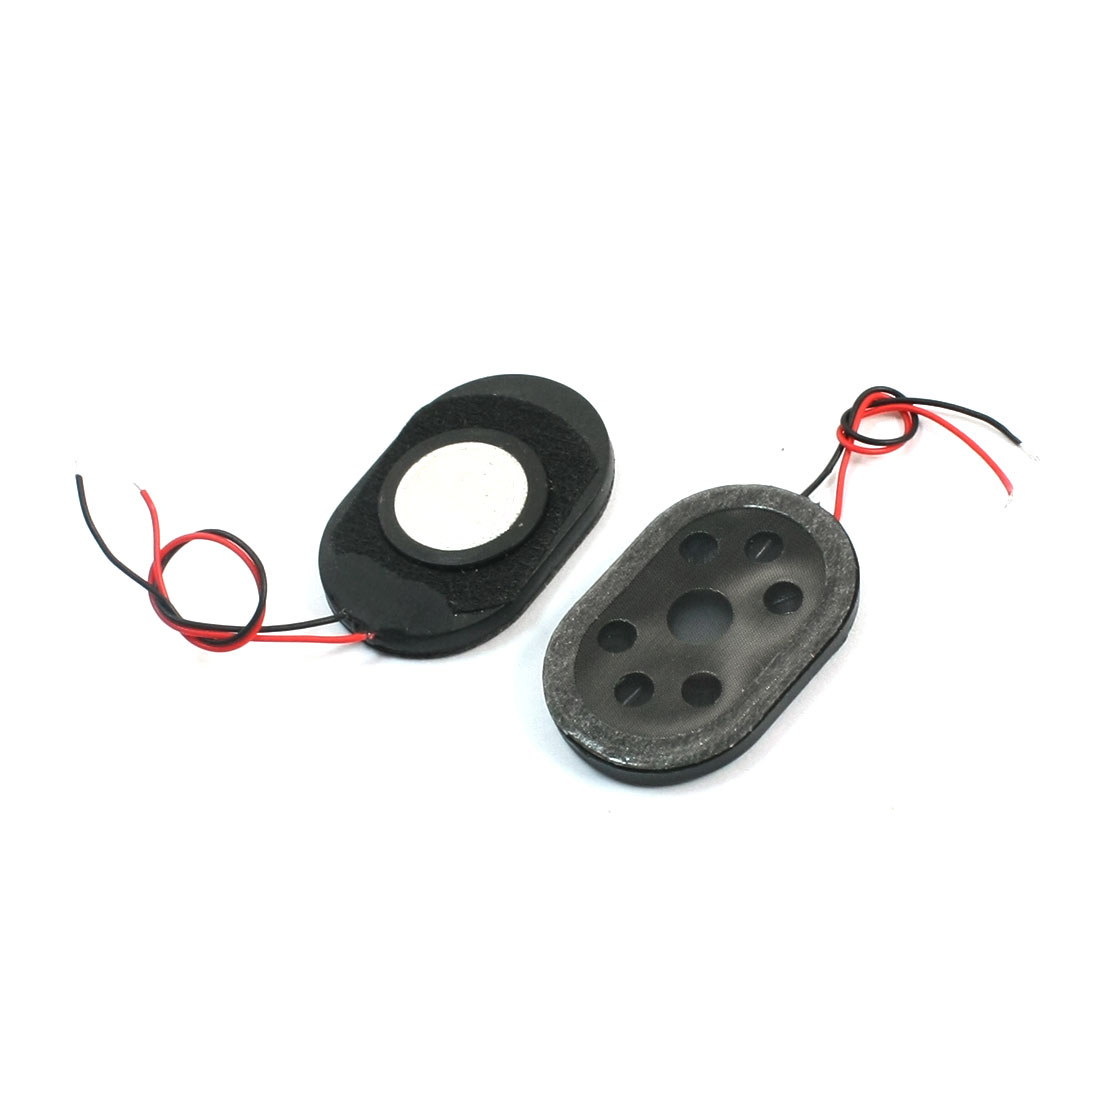 2Pcs 1Watt 8 Ohm 2-Wired Oval Plastic Shell Global Position System Navigator Voice Amplifier Speaker Loudspeaker Horn 30mm x 20mm